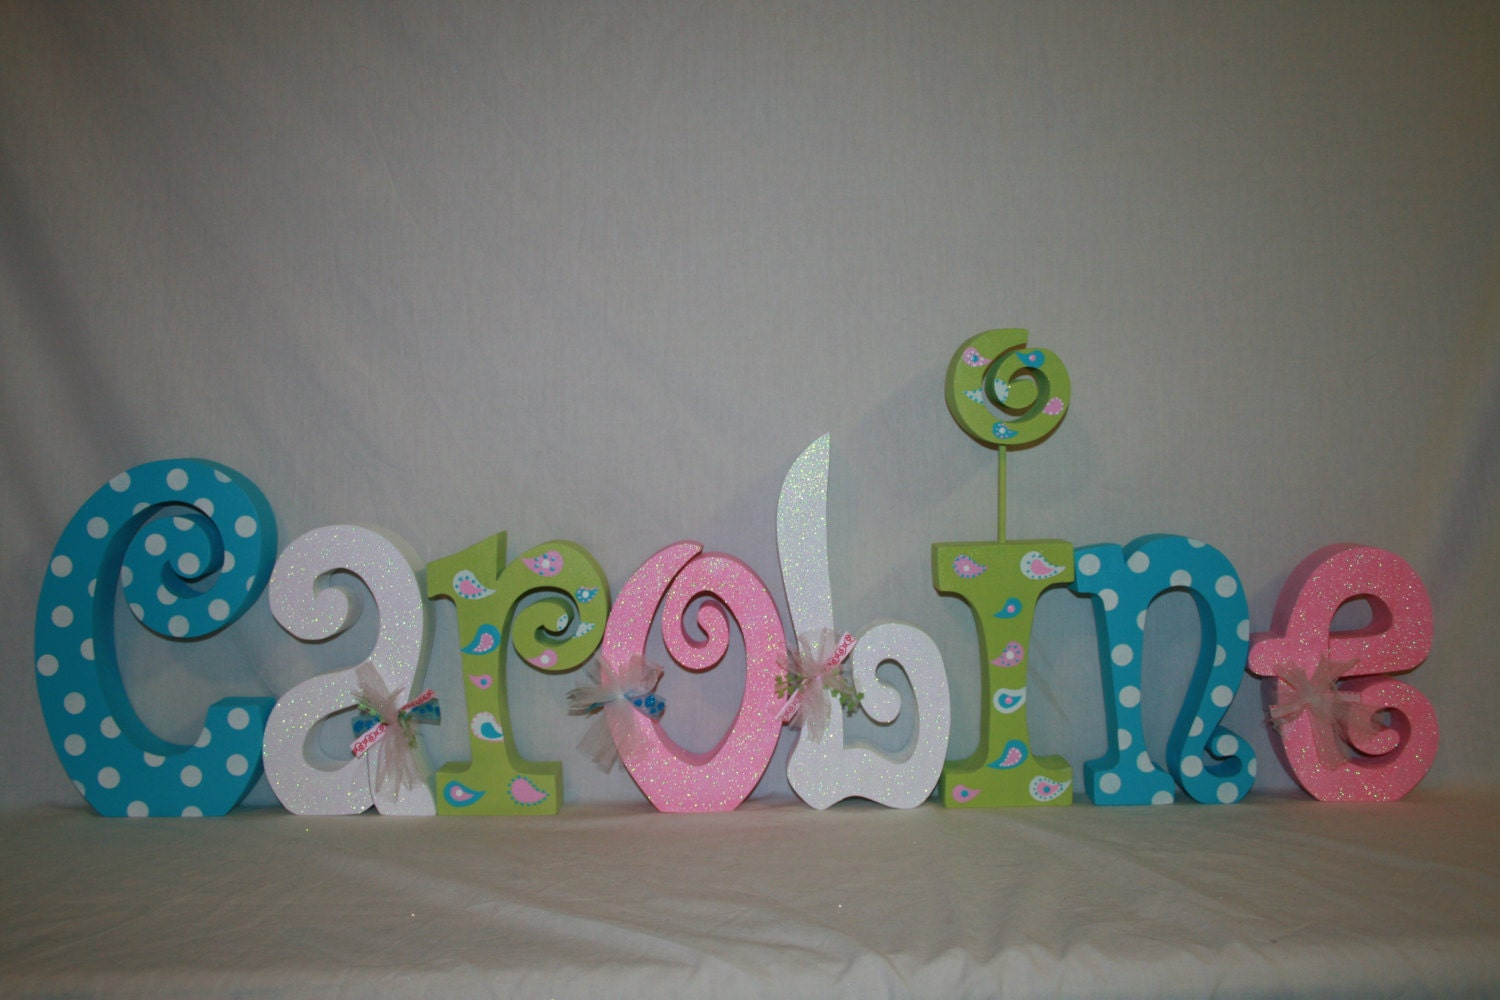 Nursery wall decor wood letters 8 letter set kids room - Decorative wooden letters for walls ...